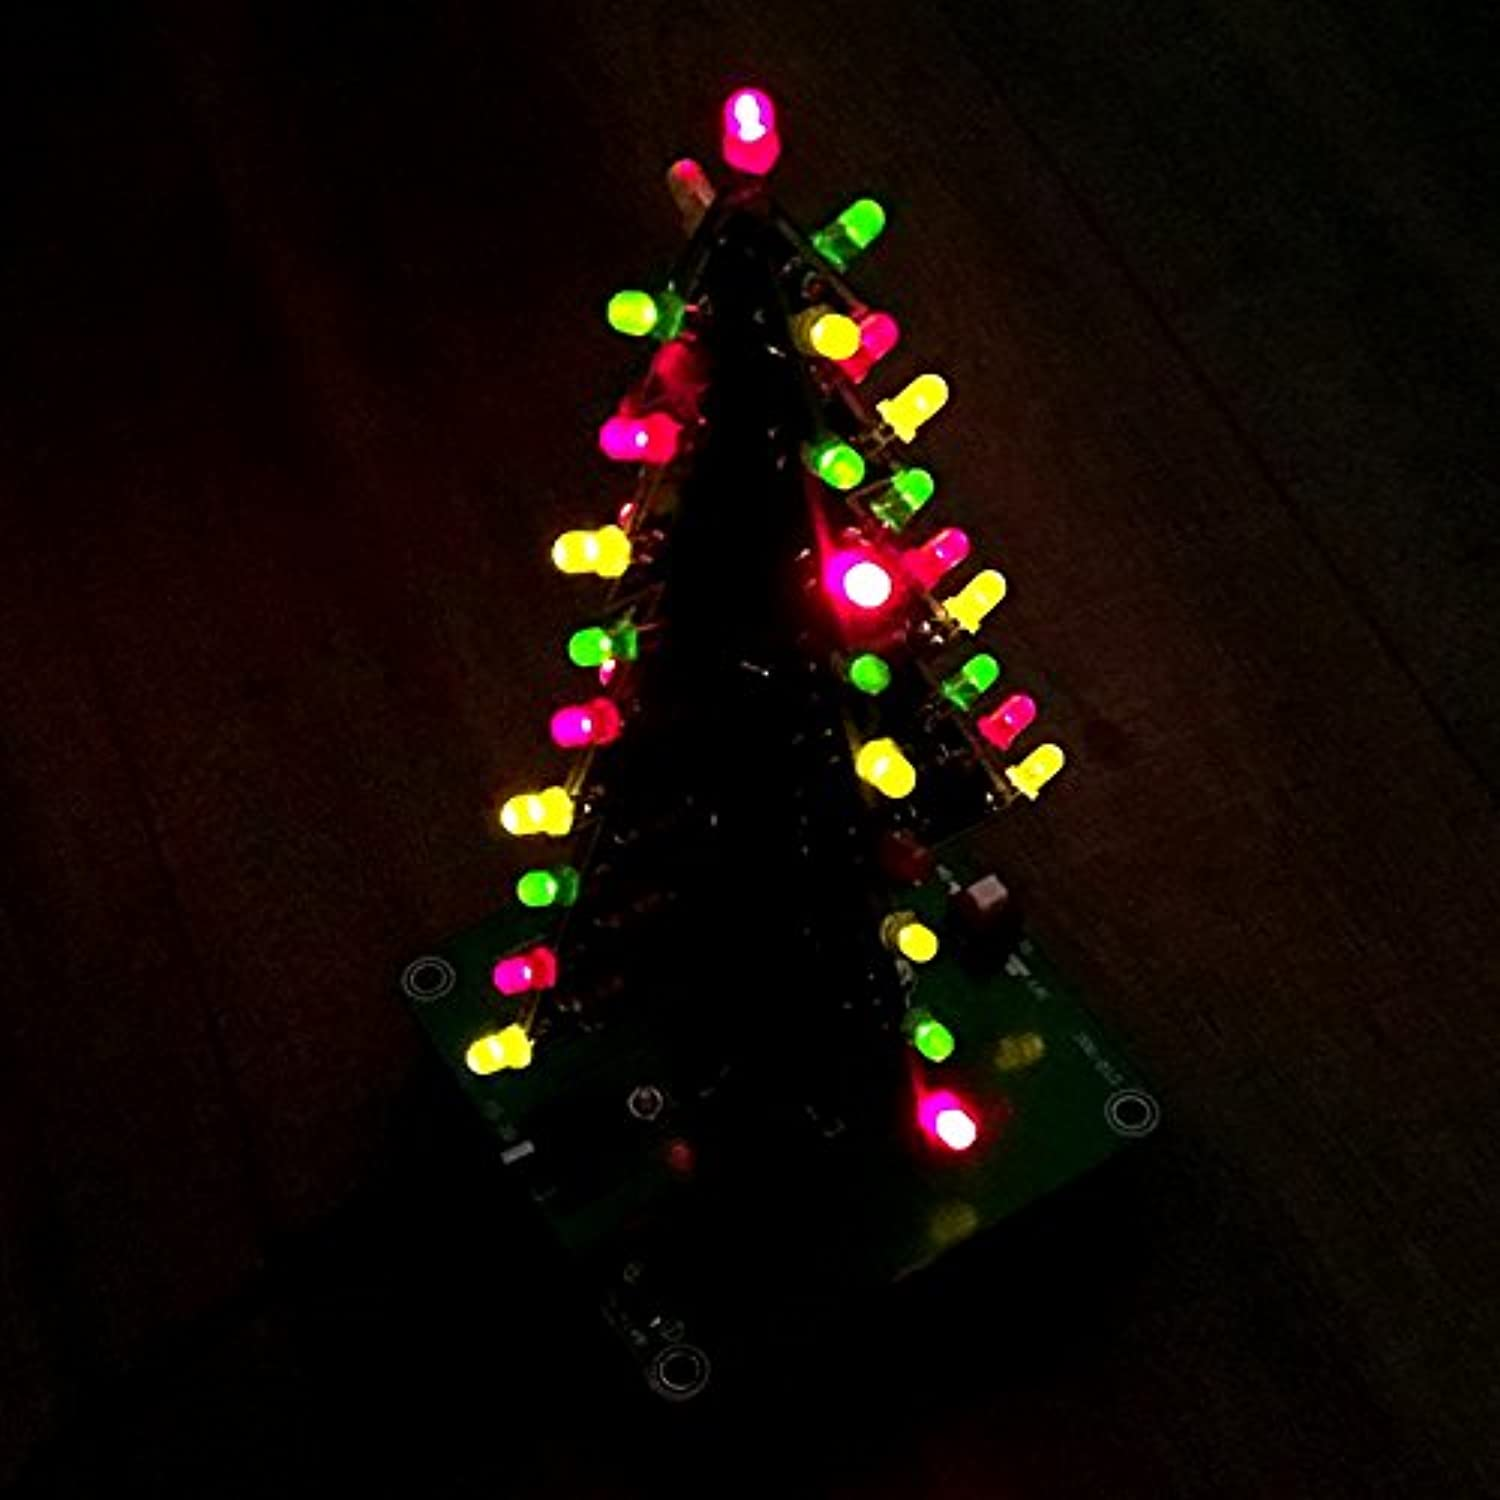 Gikfun 3d Christmas Tree Led Diy Kit Flash Circuit Ek1719u Lights Flasher Esooho